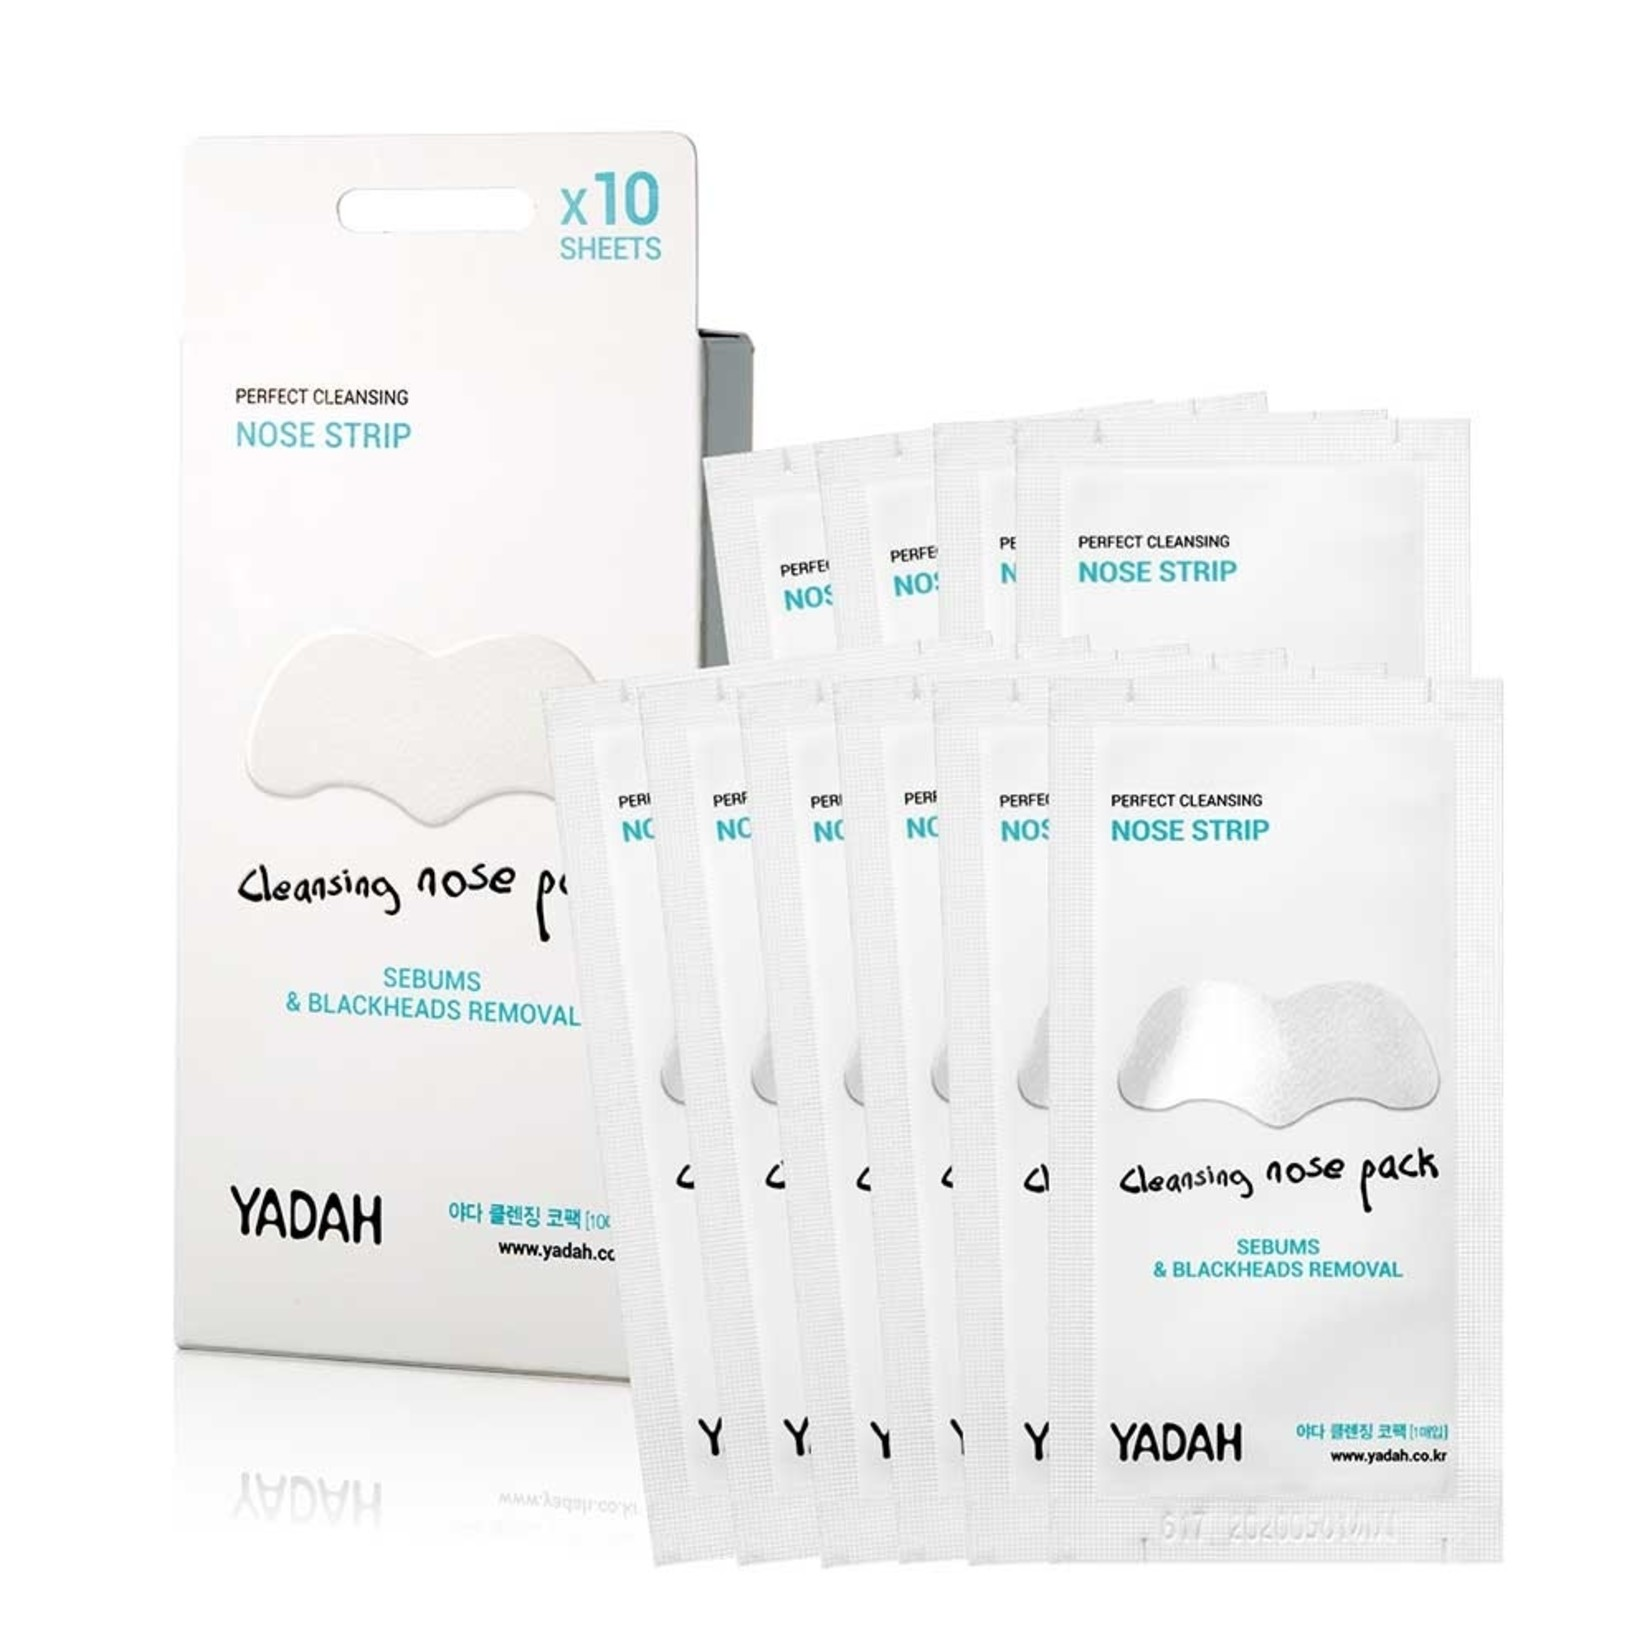 Yadah Cleansing Nose Pack 10 pcs